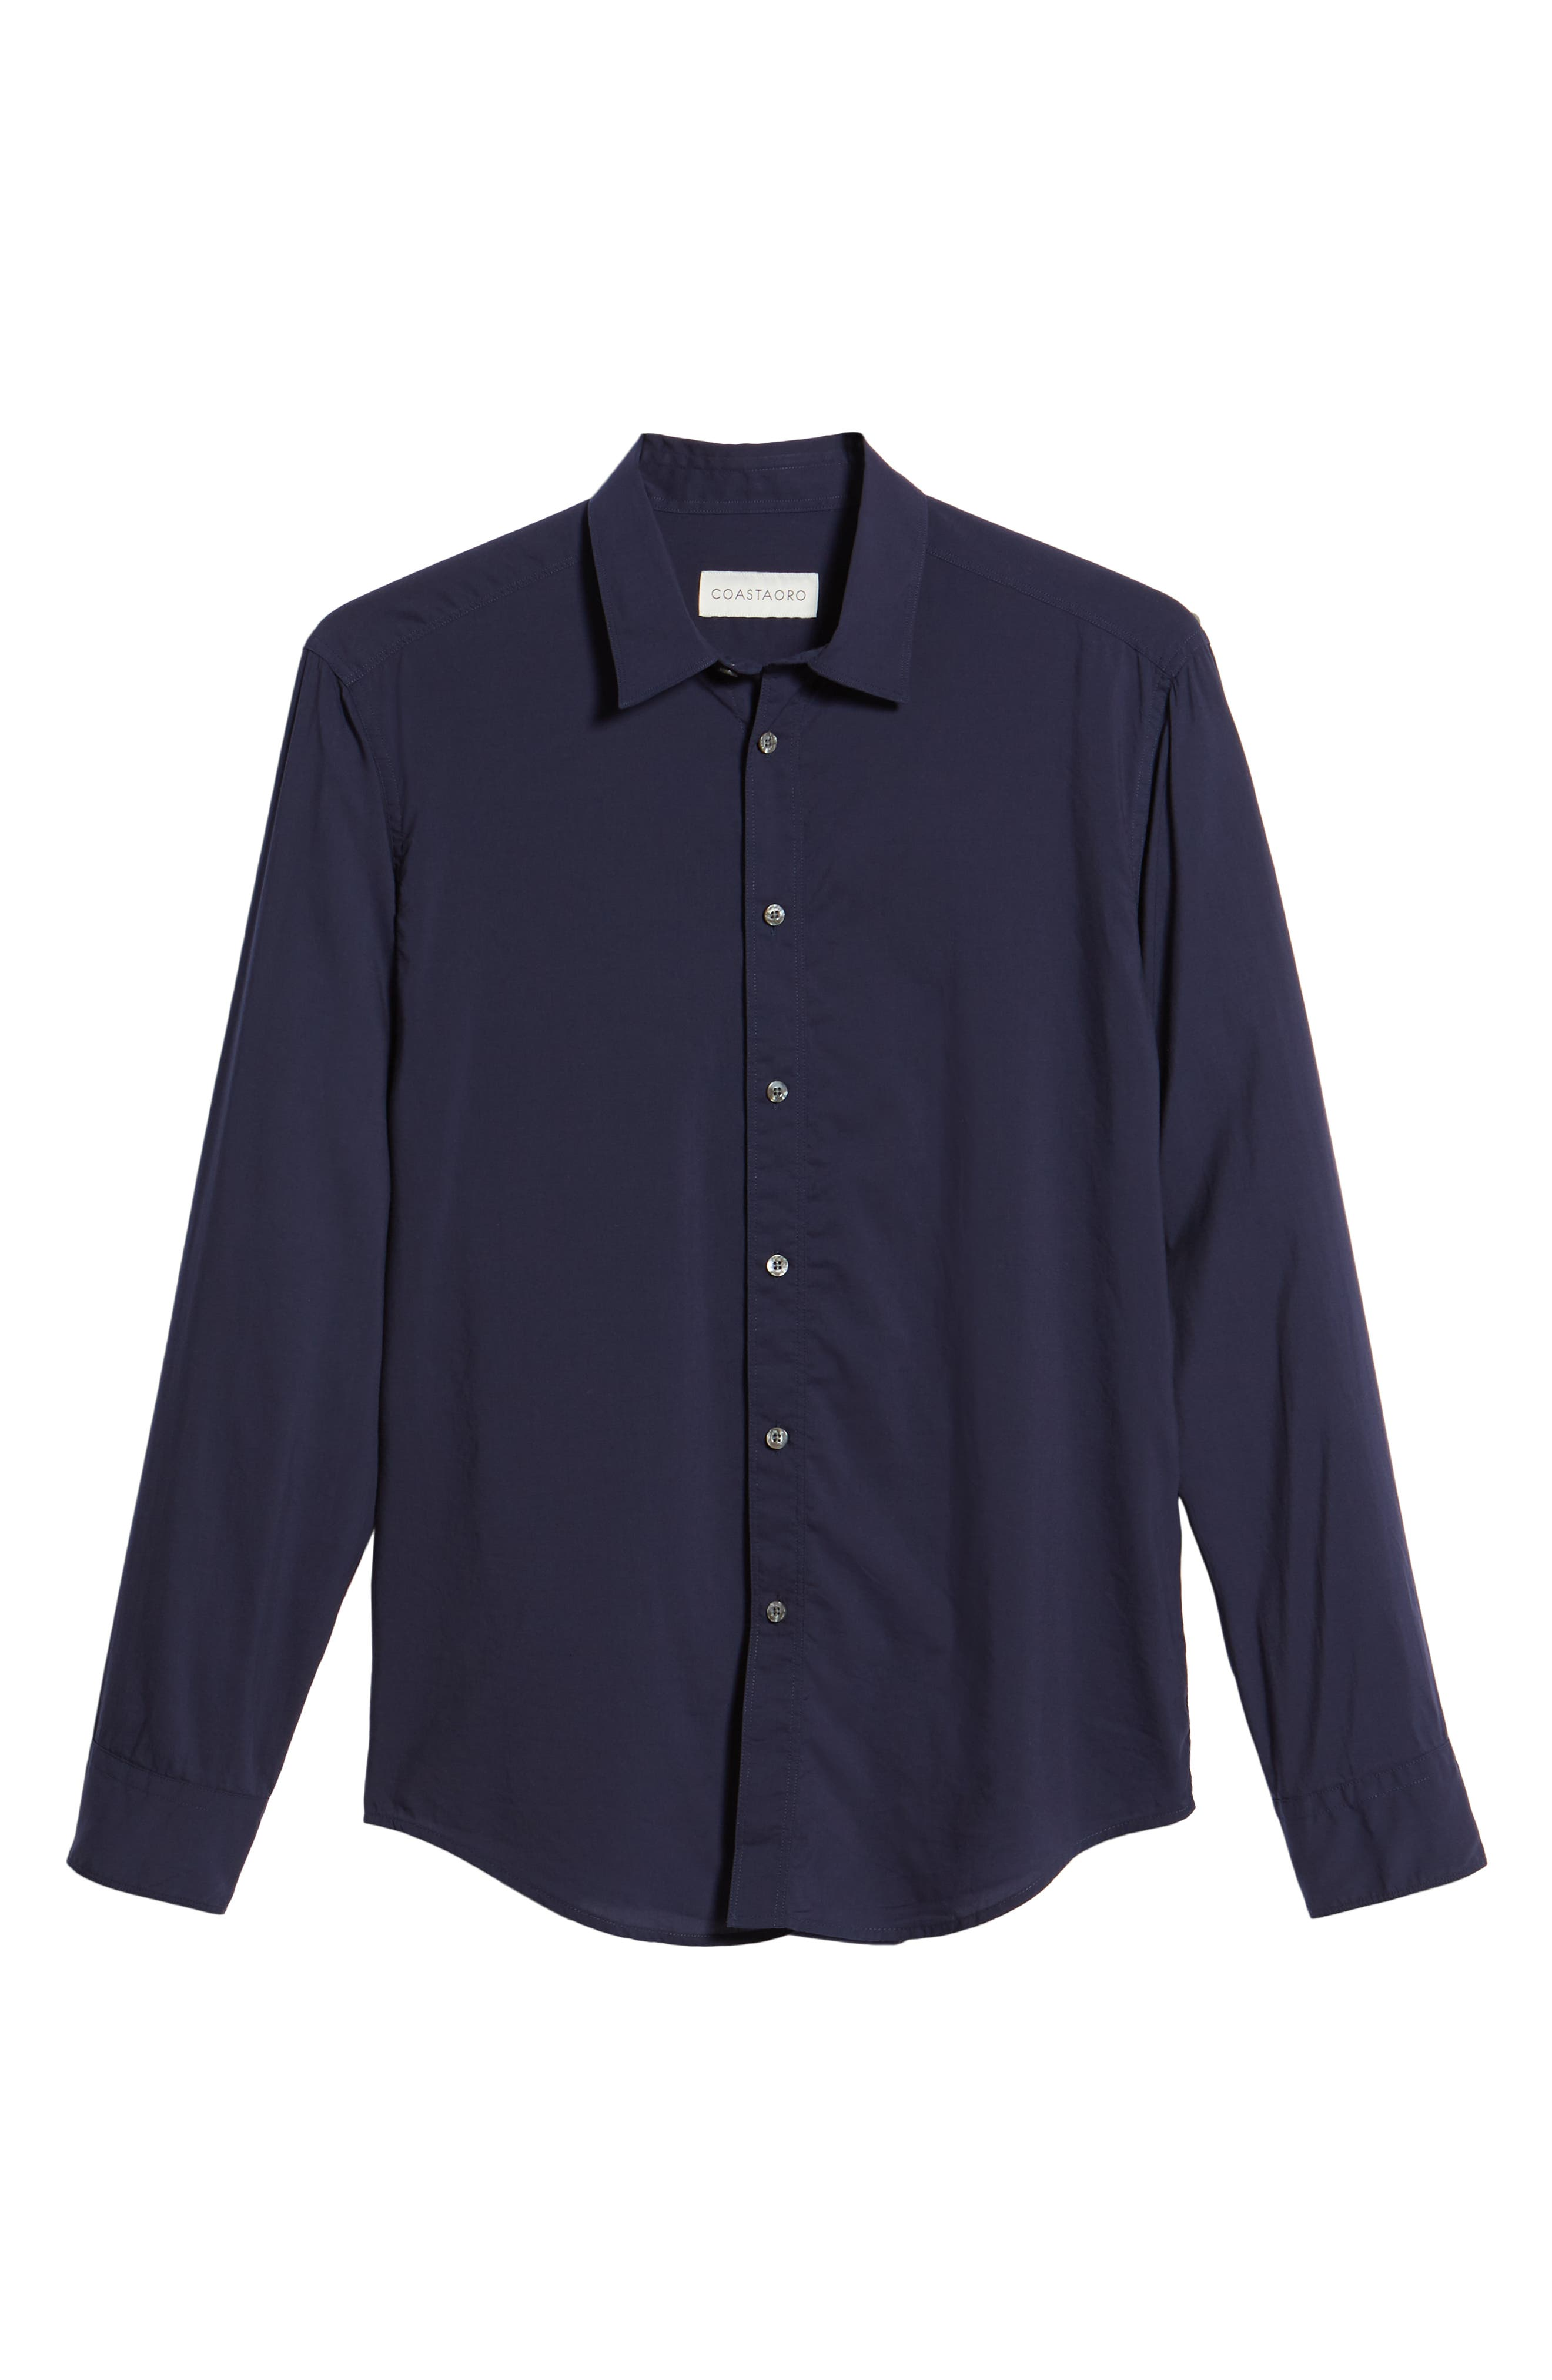 Pacifica Regular Fit Solid Sport Shirt,                             Alternate thumbnail 6, color,                             Navy